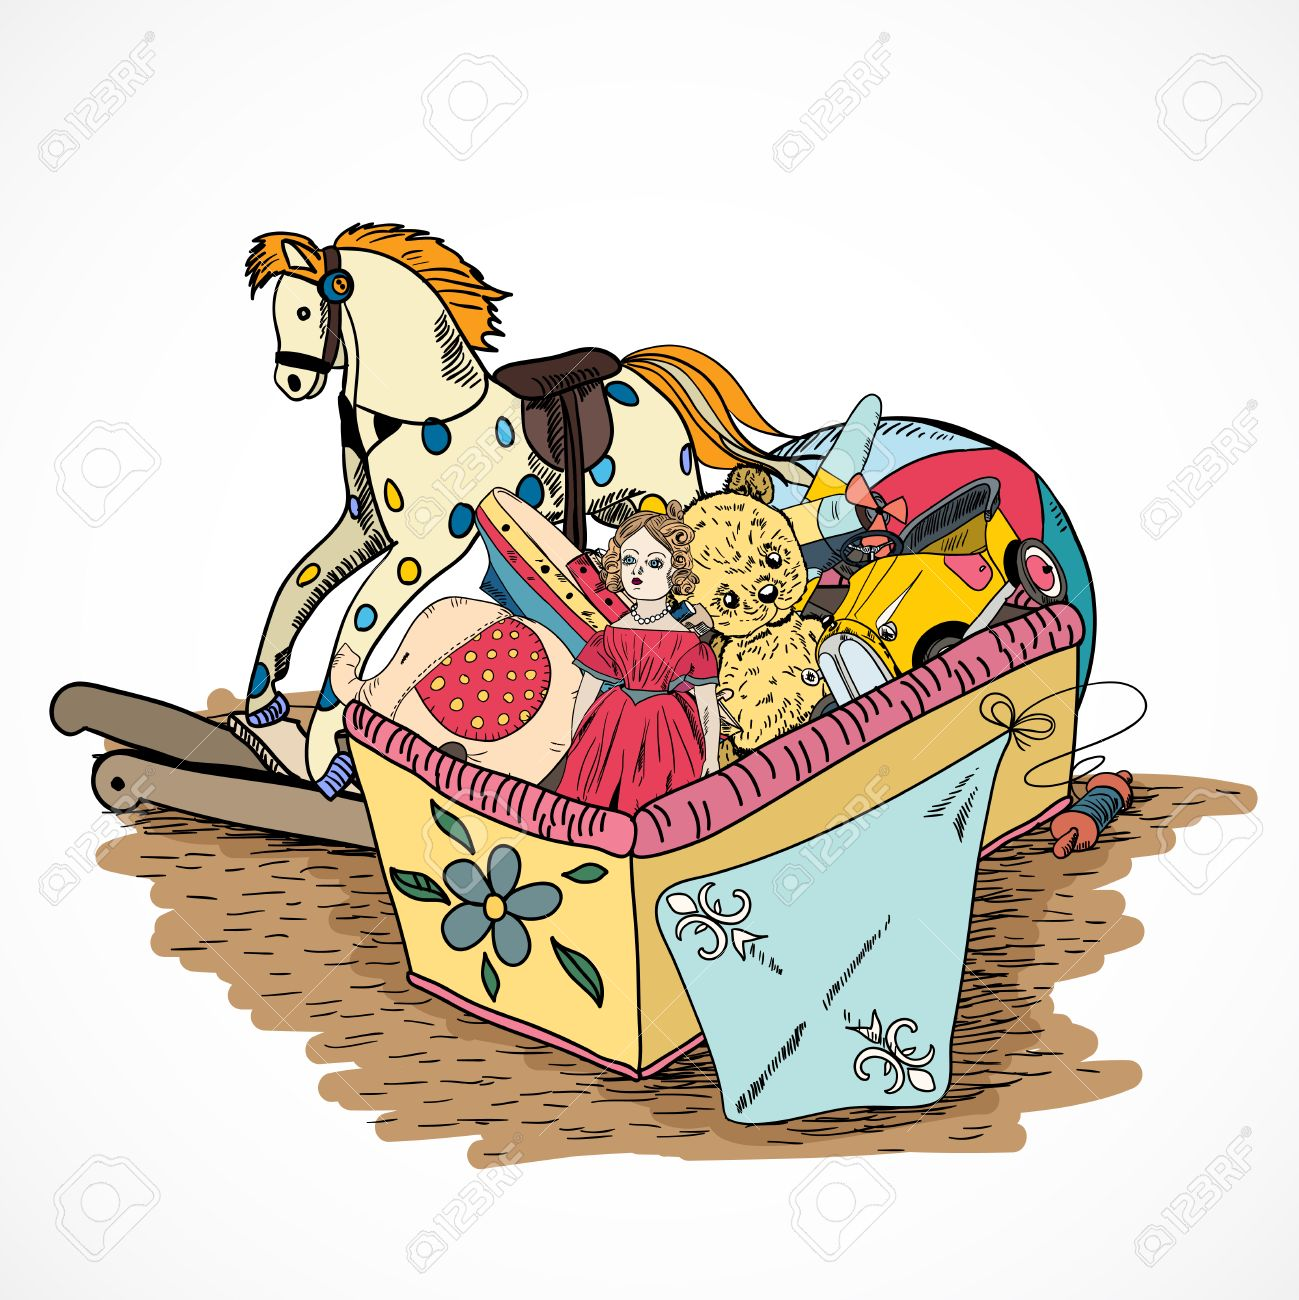 Old Style Kids Toys Sketch Box With Kite Ball Rocking Horse Doll.